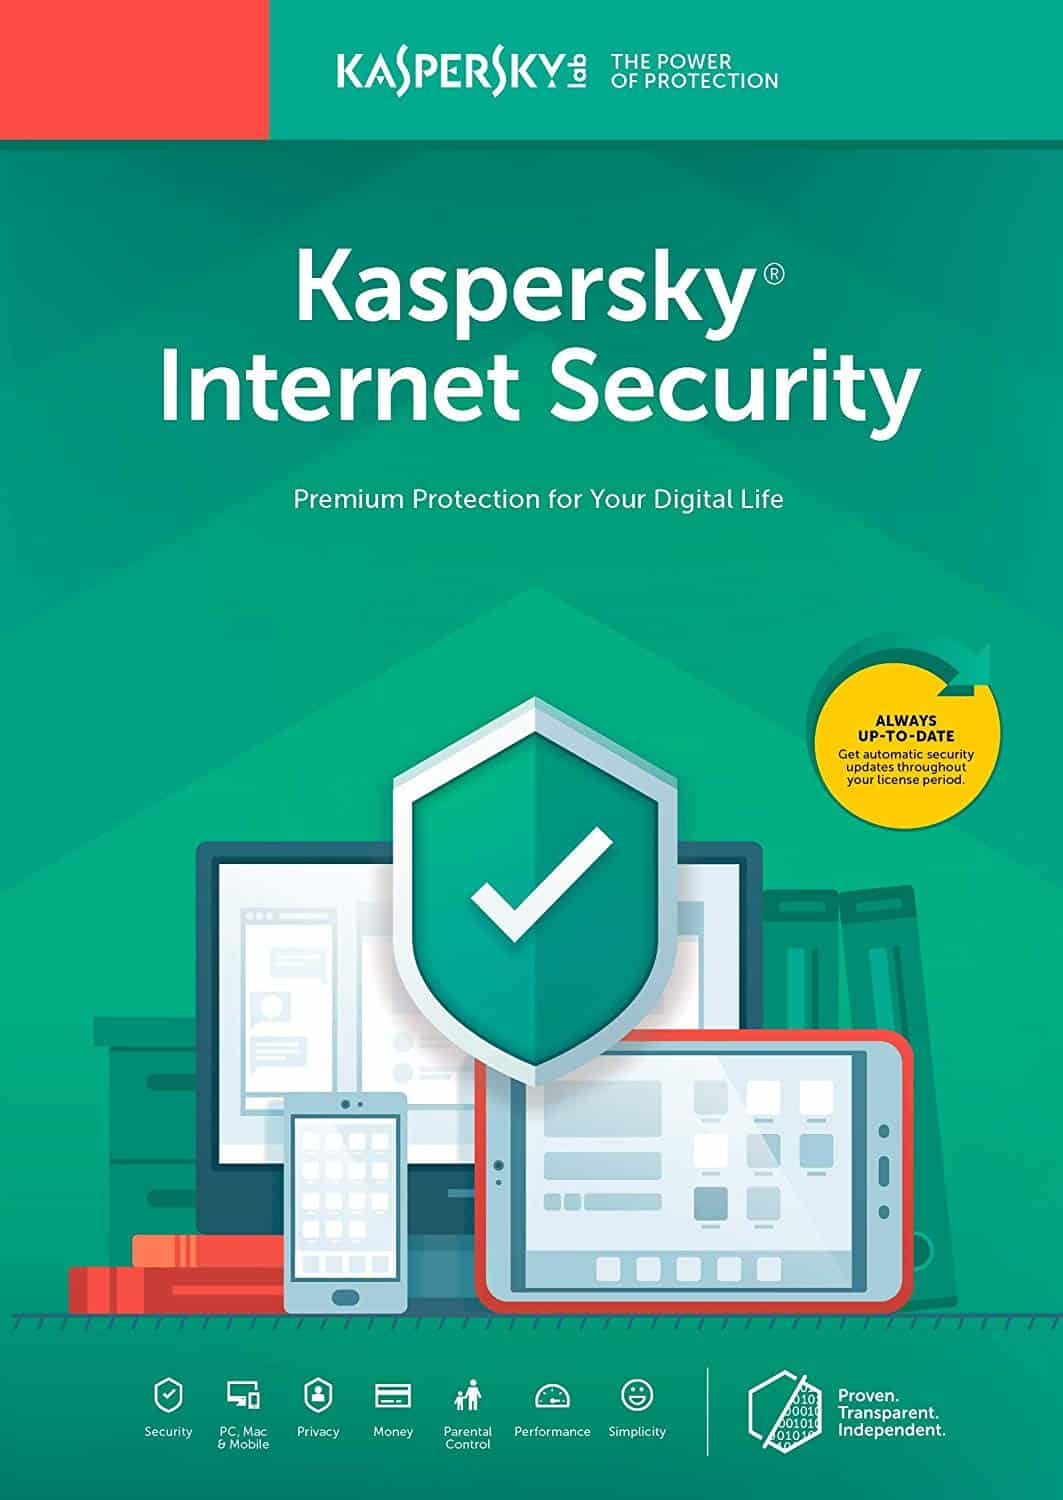 The Kaspersky Partner in Pakistan plays an important role